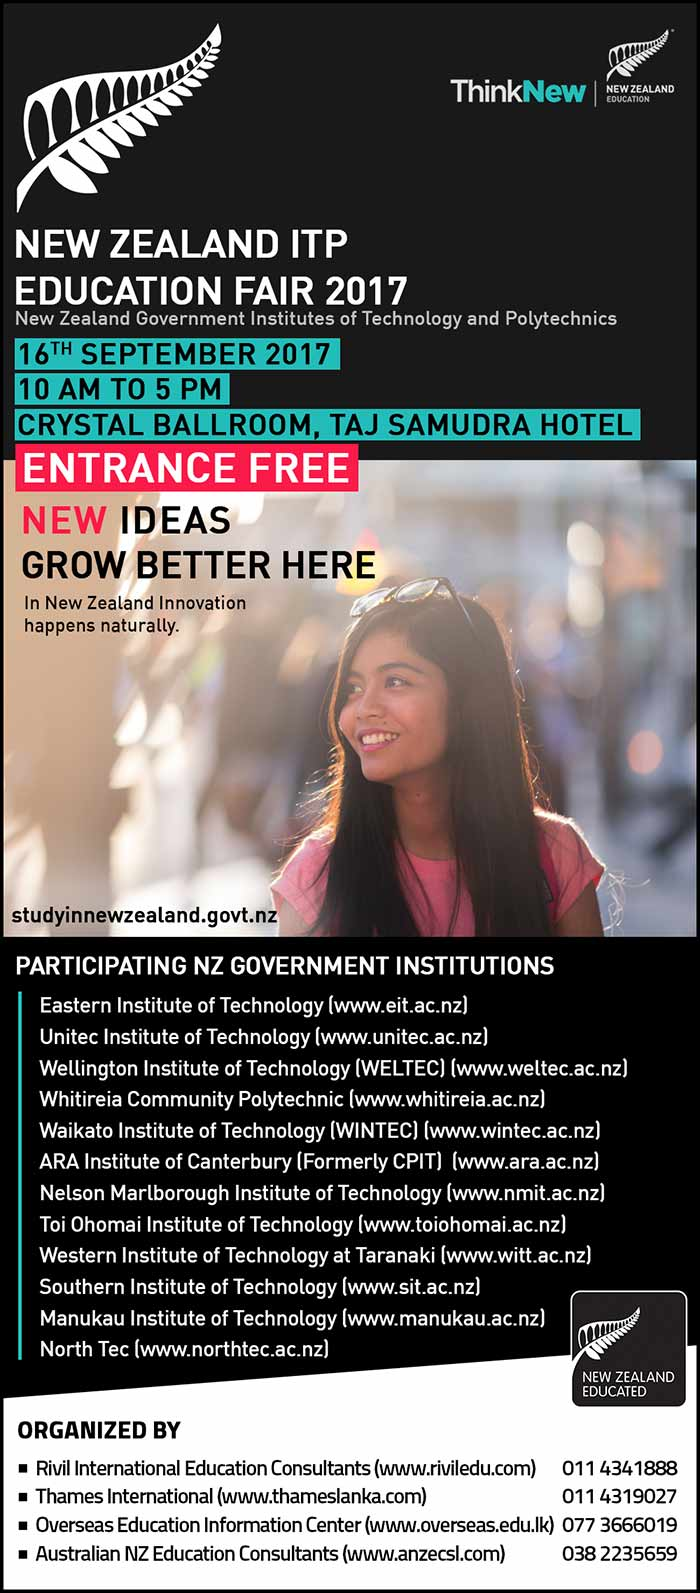 Rivil | Visit the NZ ITP Education Fair - Discuss your study options from NZ Government representatives.